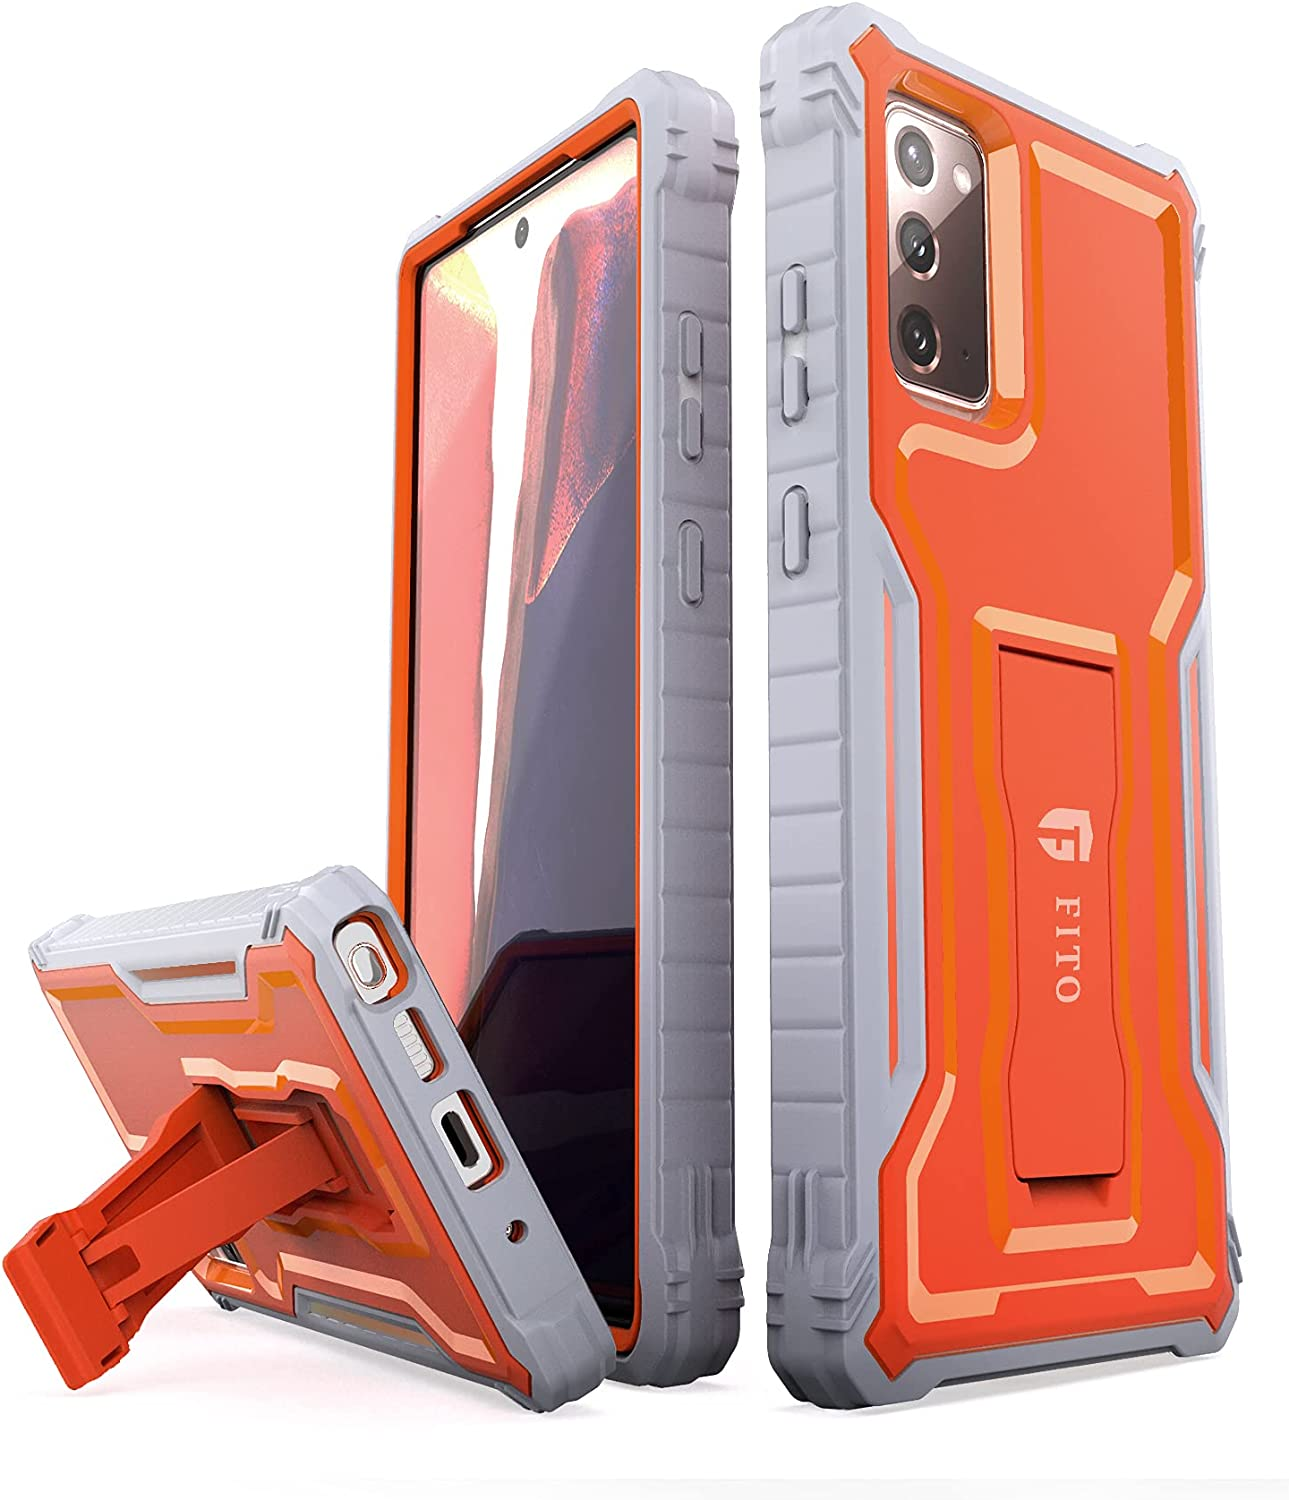 FITO Samsung Galaxy Note 20 Case, Dual Layer Shockproof Heavy Duty Case for Samsung Note 20 5G Phone Without Screen Protector, Built-in Kickstand(Orange, 6.7 inch)